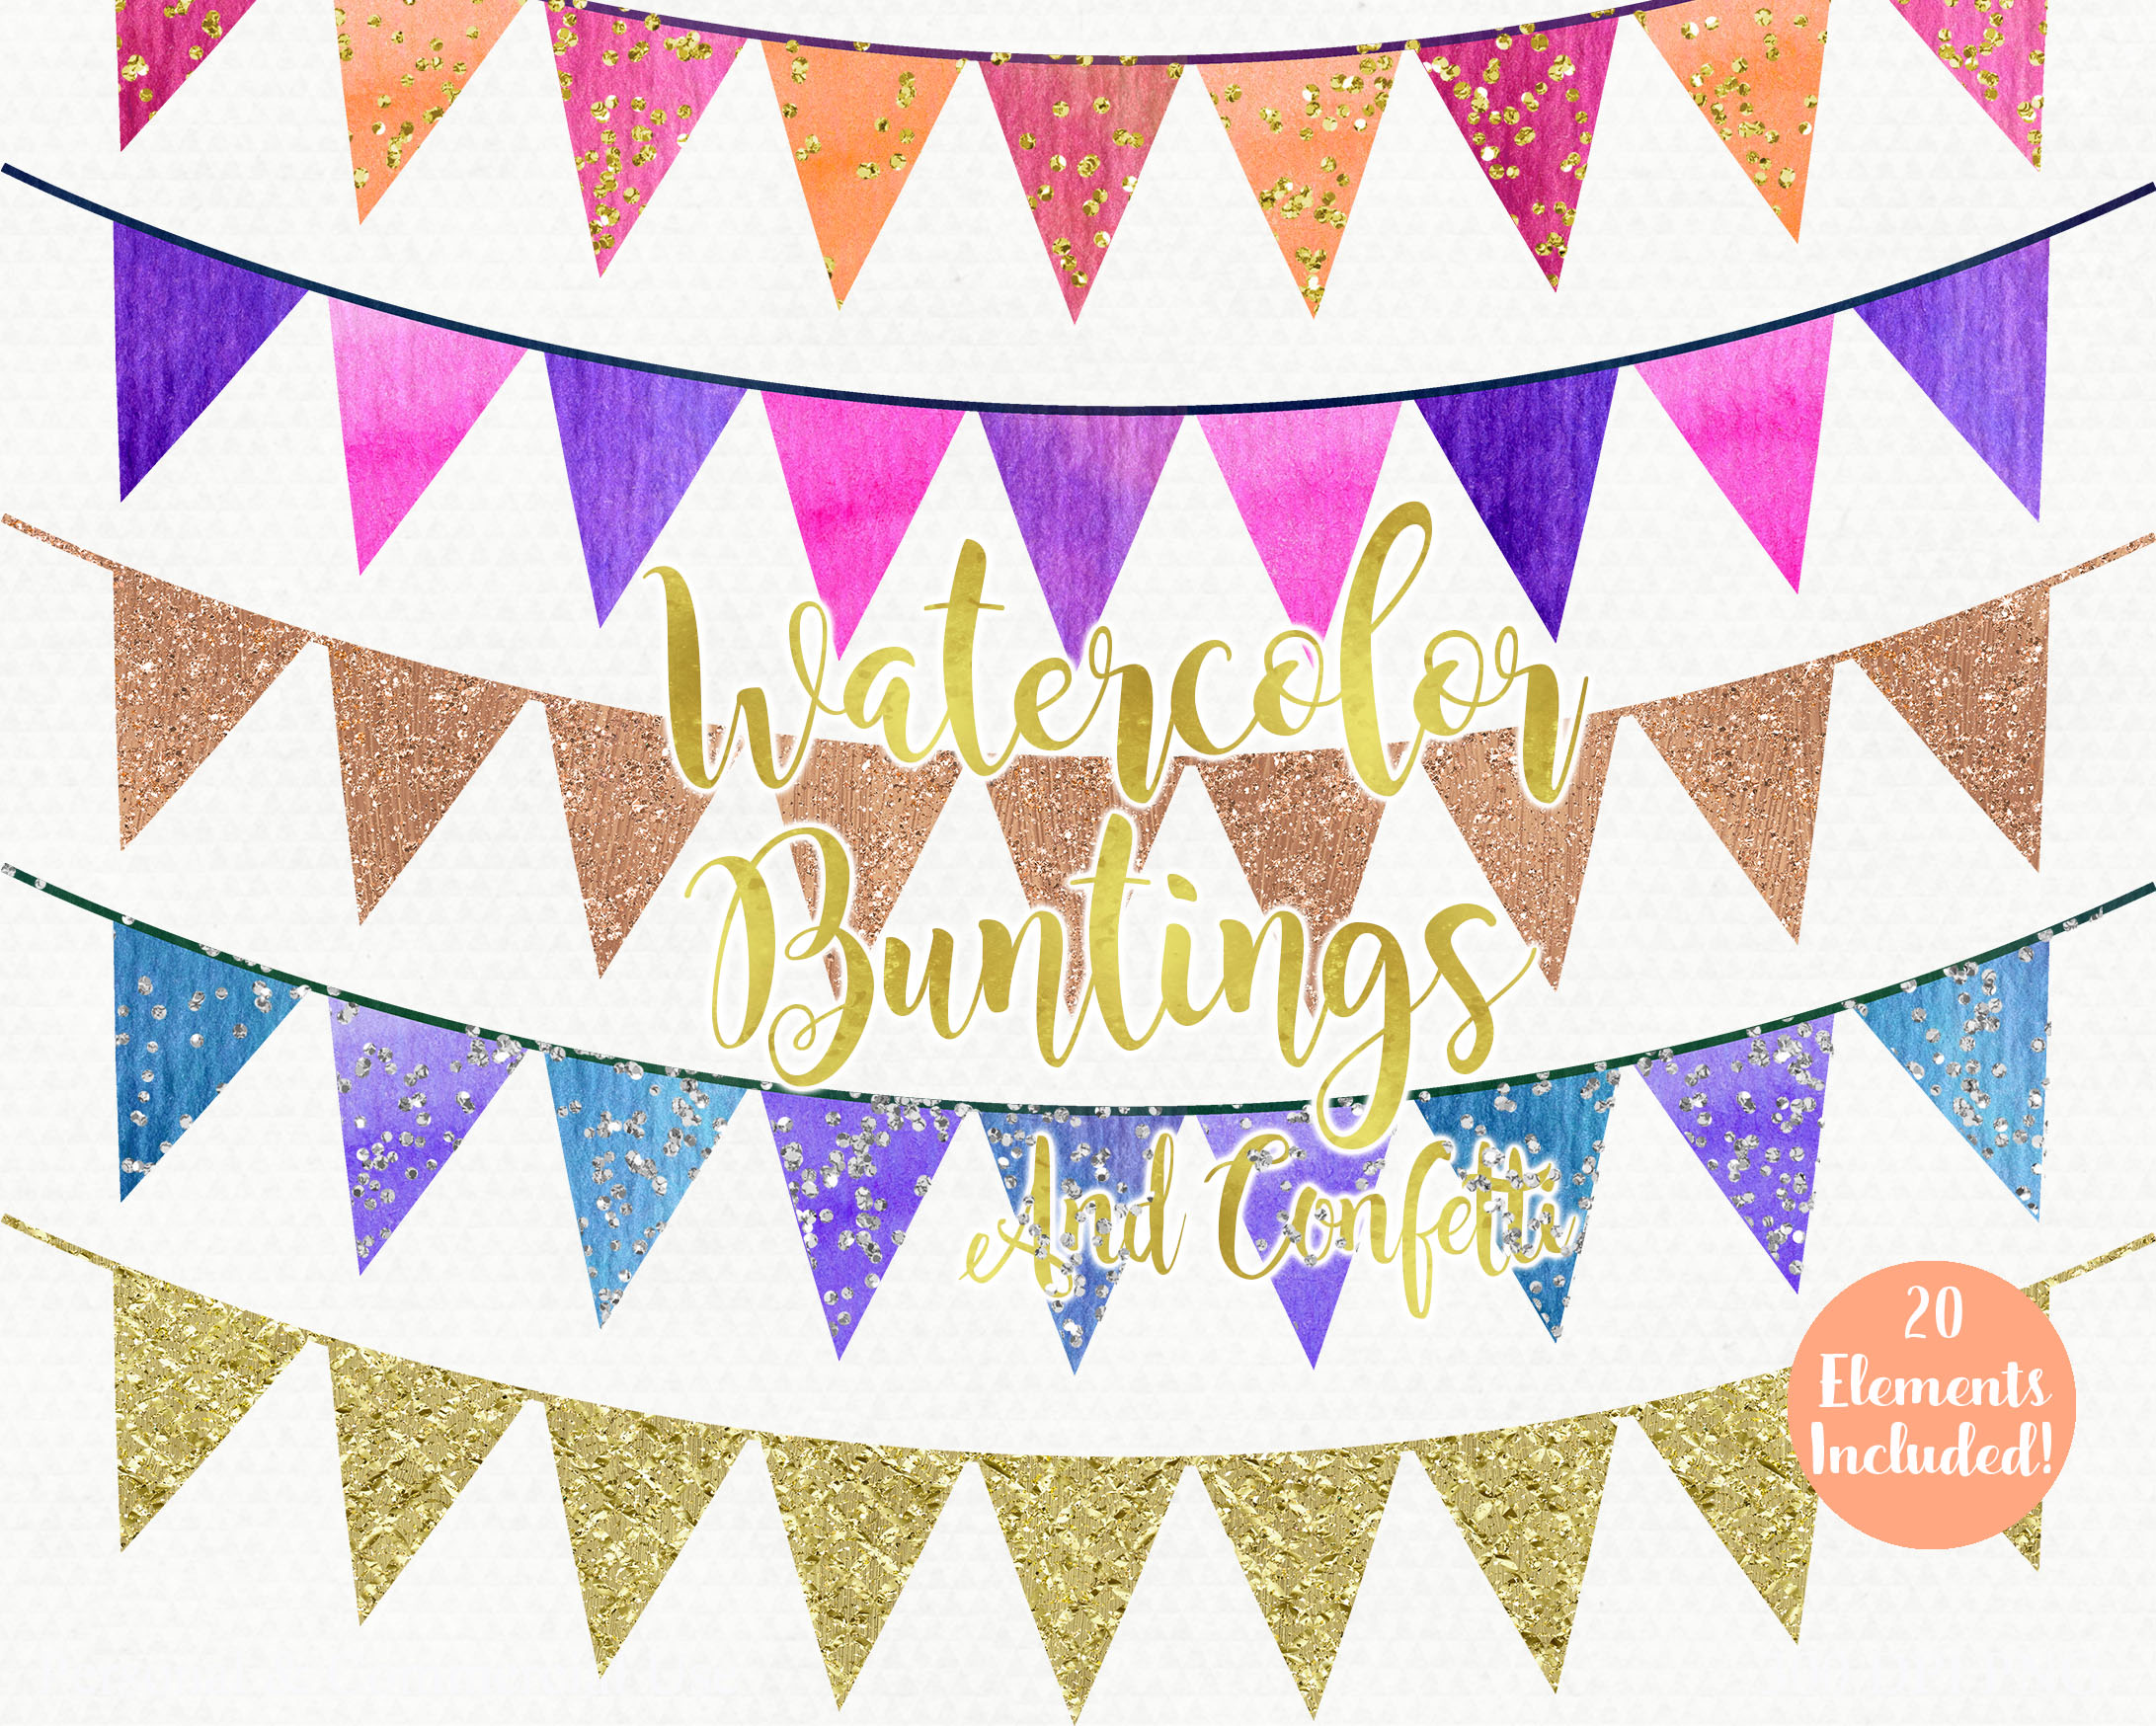 GOLD BUNTING BANNER Clipart Rainbow Watercolor Pennant ...